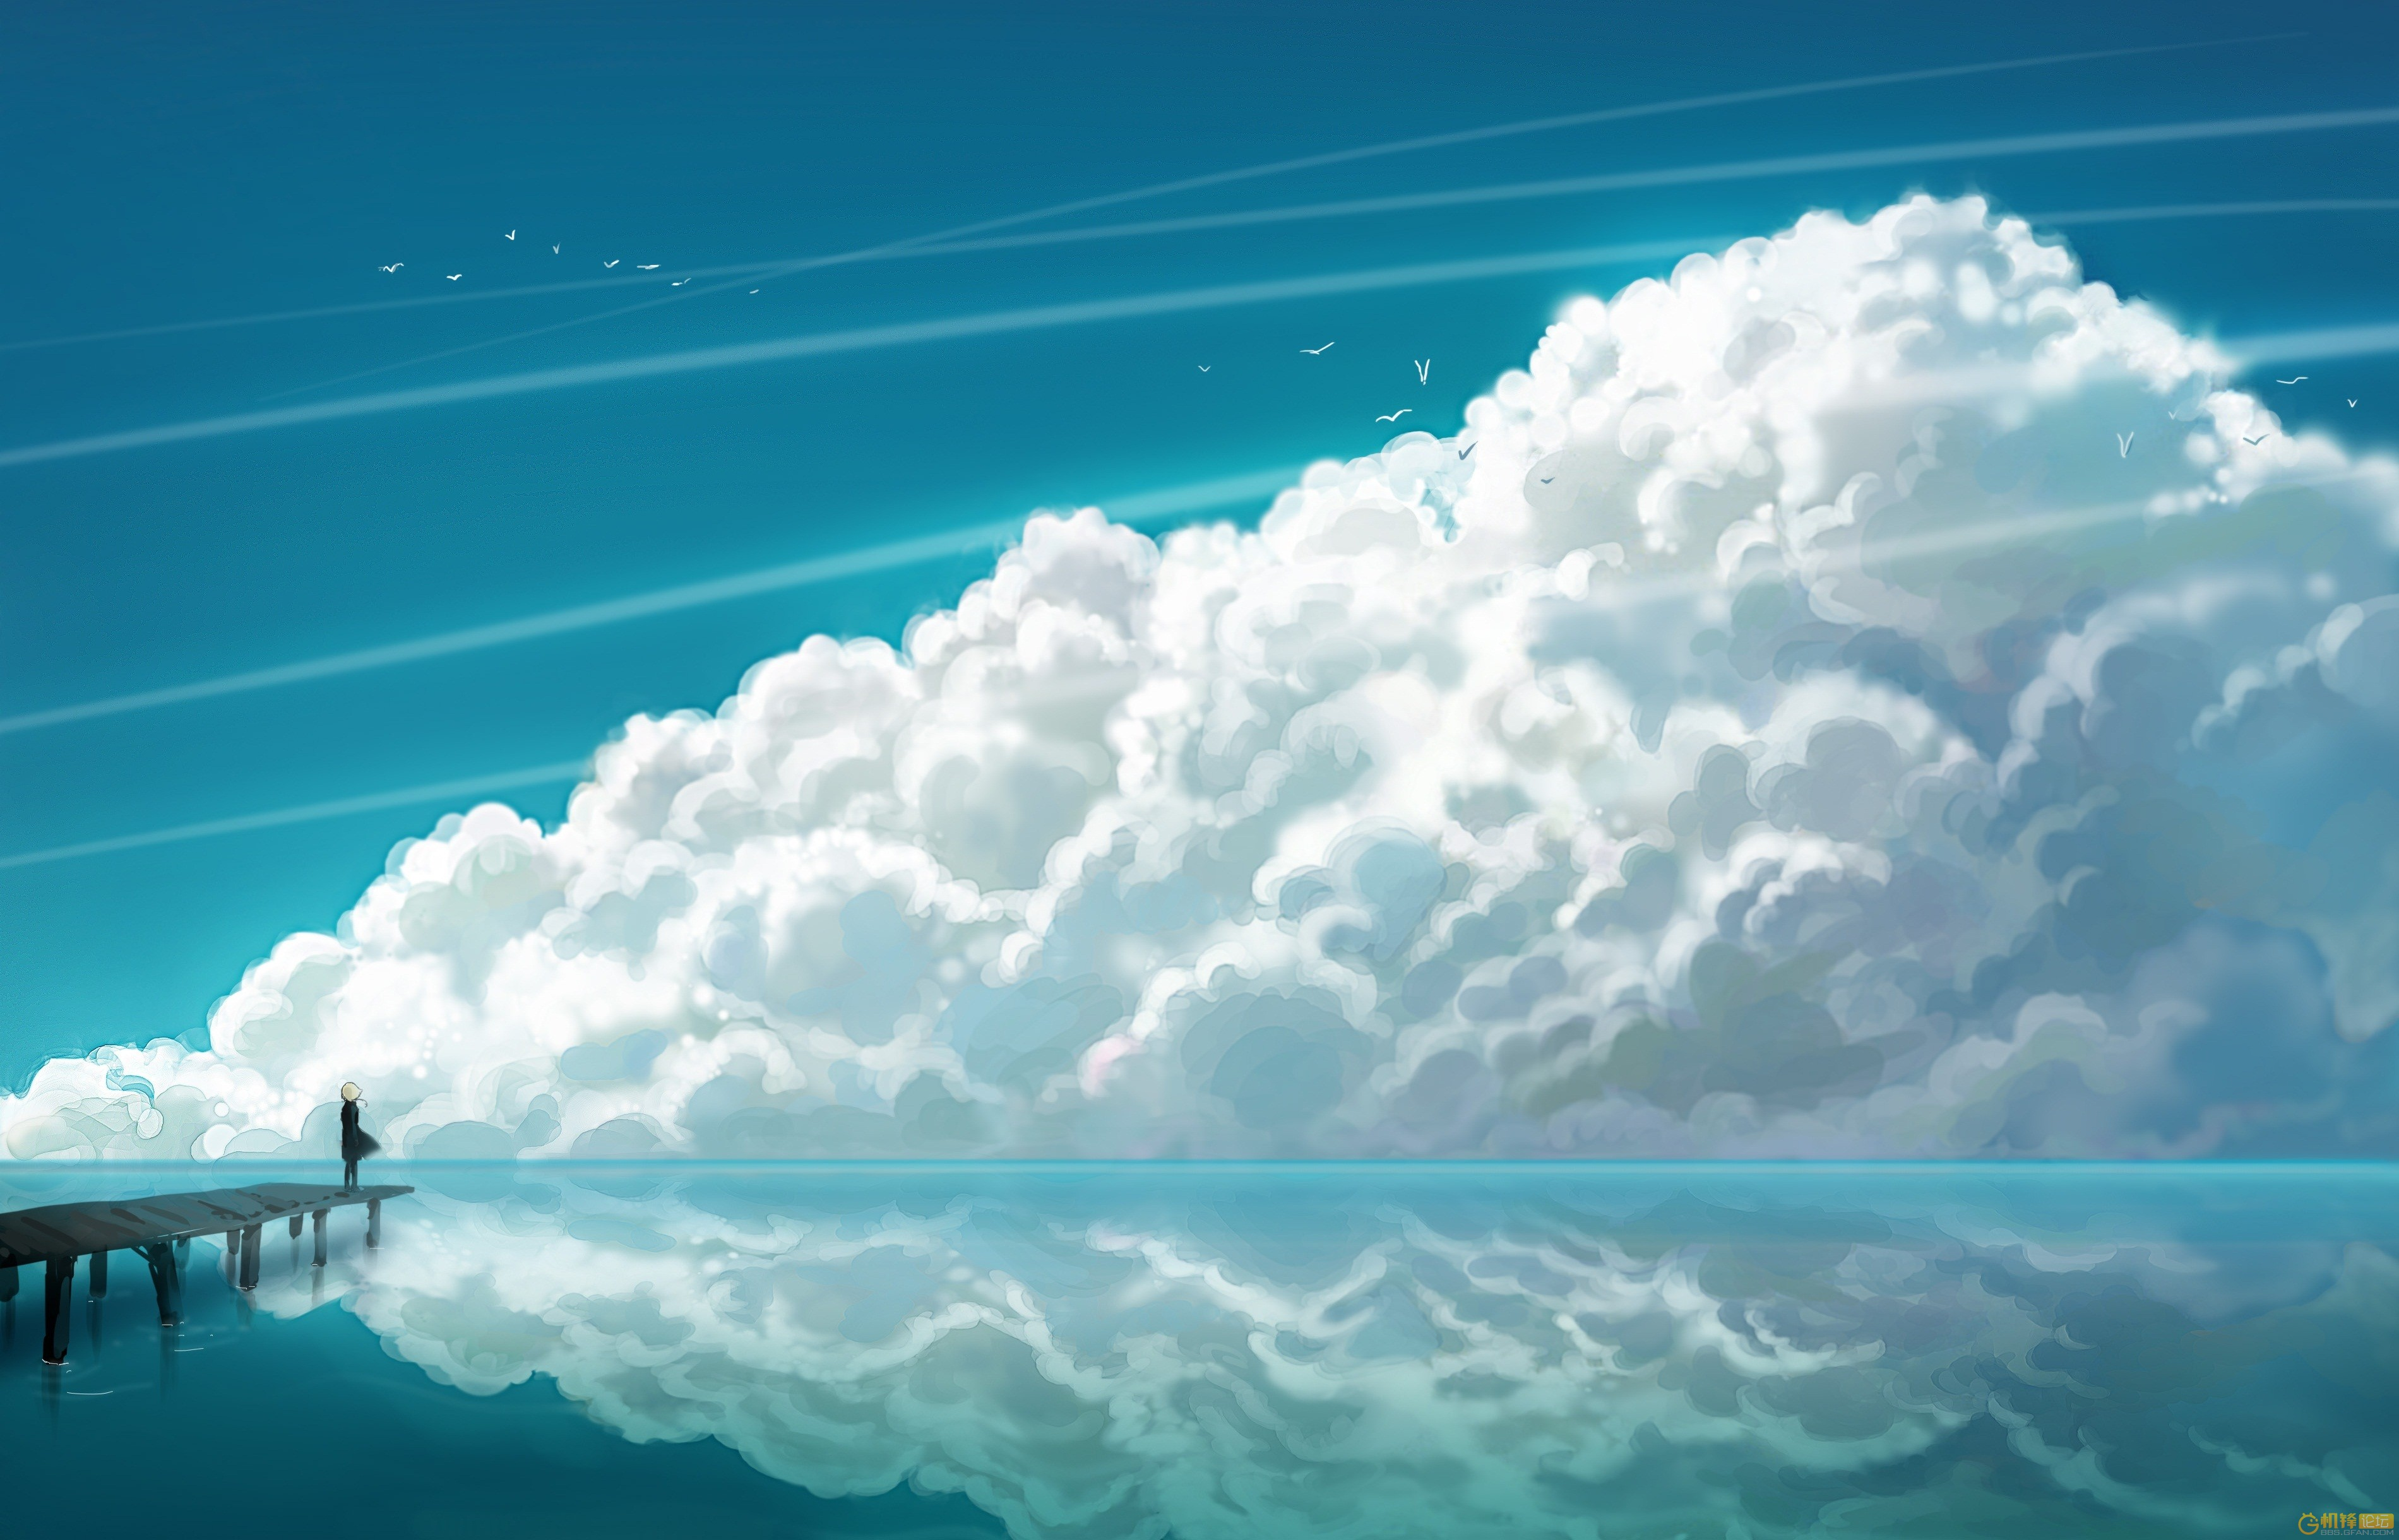 52122 download wallpaper Sky, Art, Sea, Clouds, Reflection, Bridge, Human, Person screensavers and pictures for free